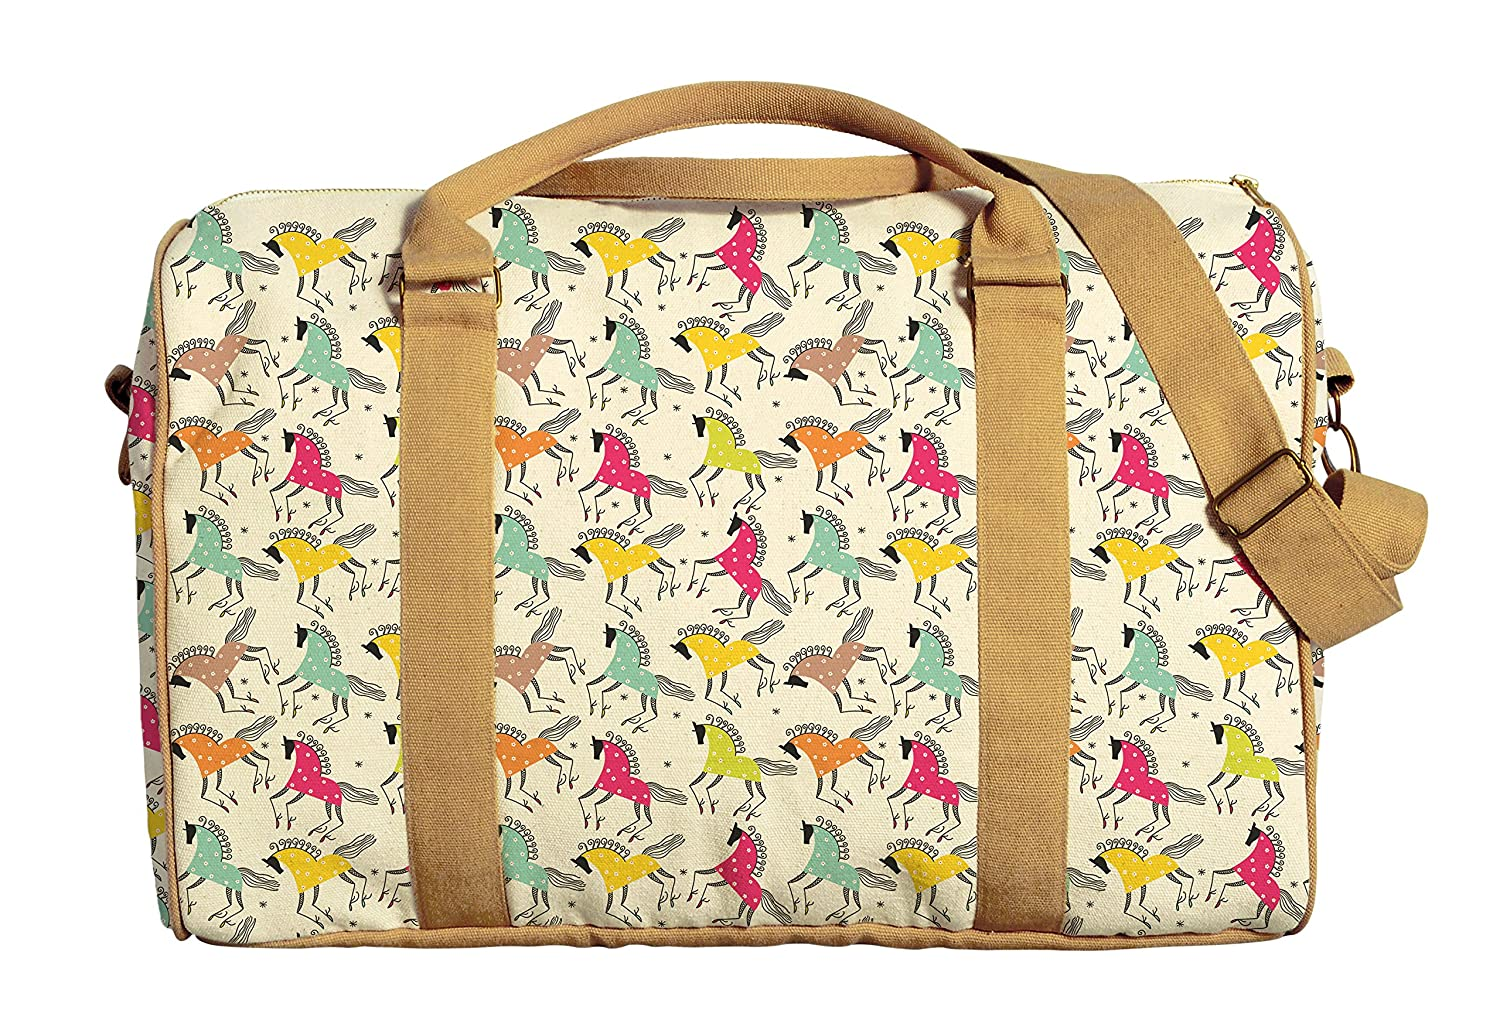 Unicorn Patterns Printed Canvas Duffle Luggage Travel Bag WAS/_42